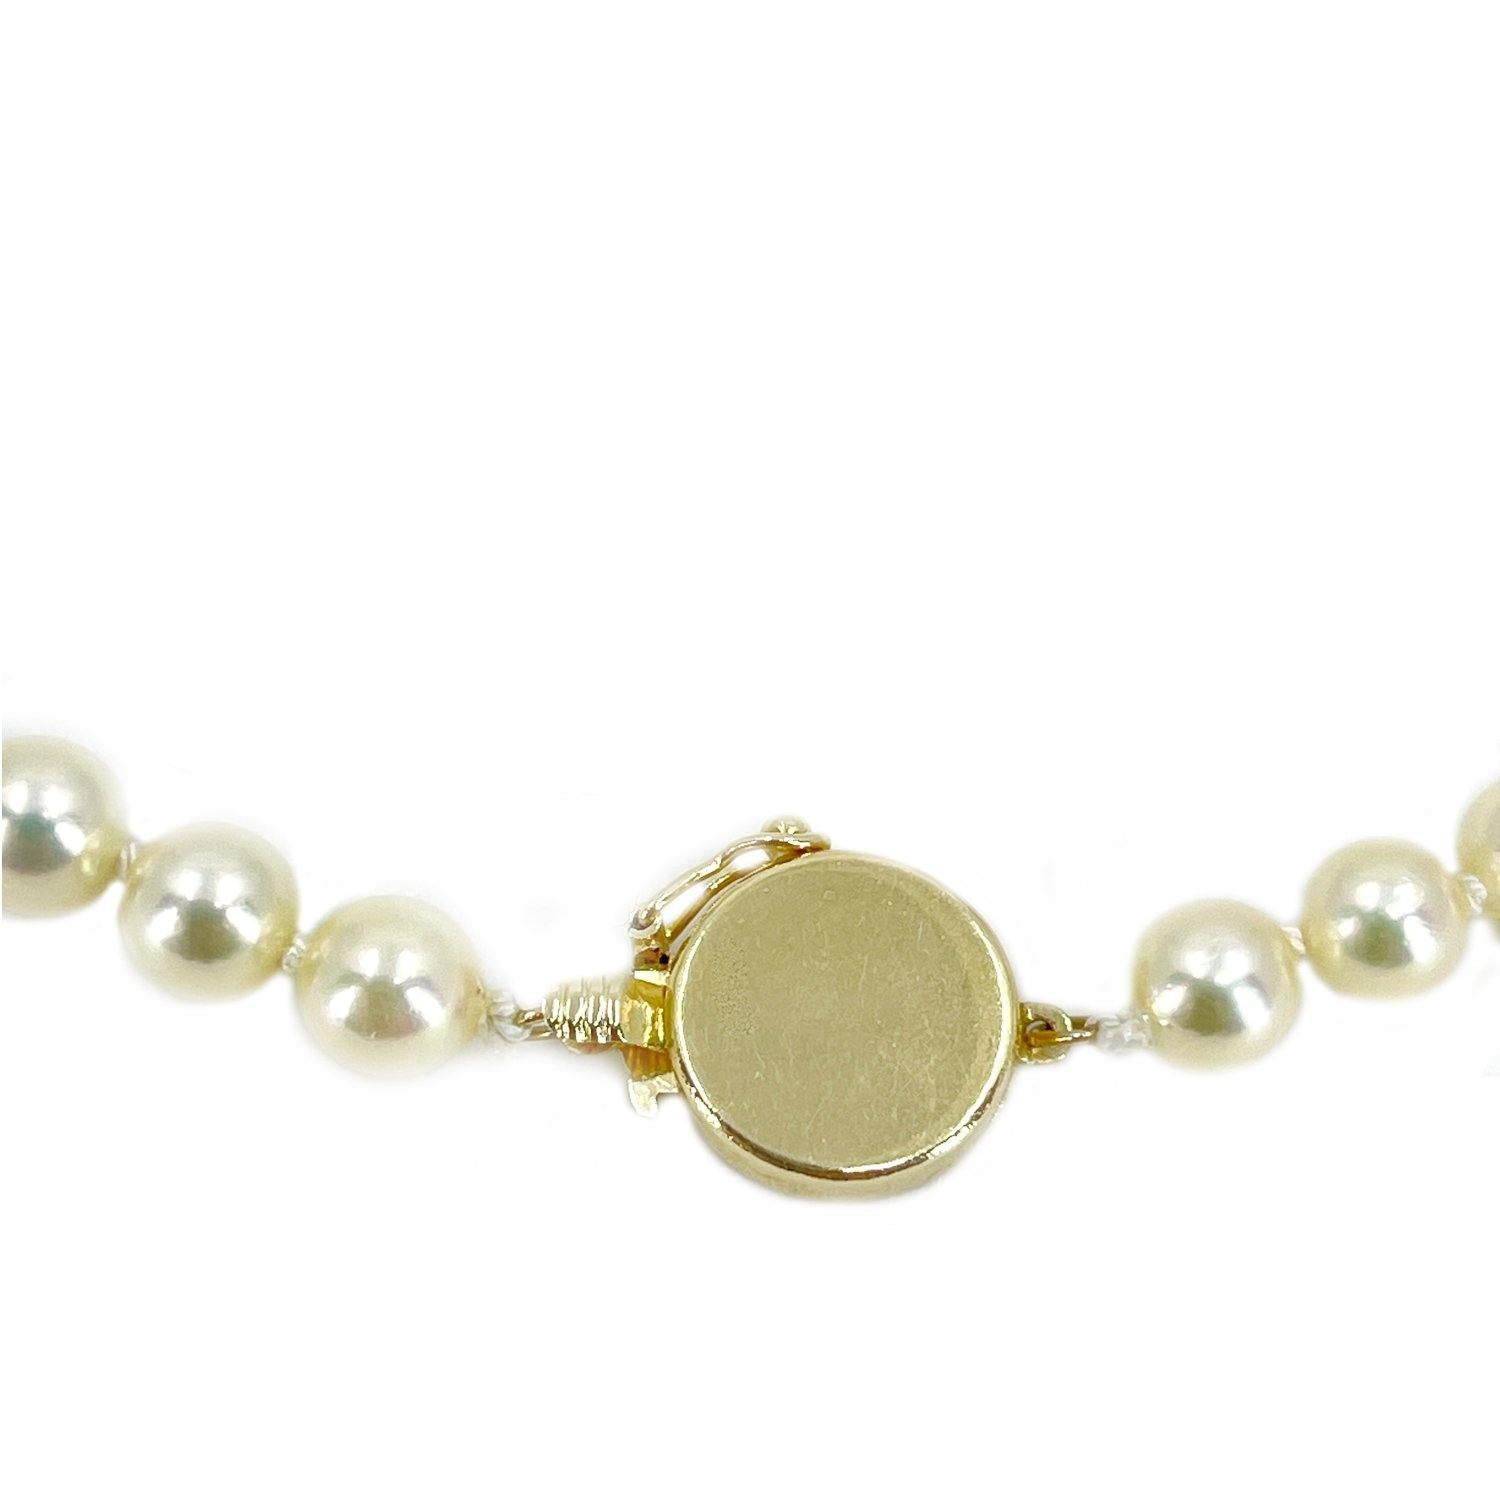 High Polish Japanese Saltwater Cultured Akoya Pearl Strand - 14K Yellow Gold 23 Inch